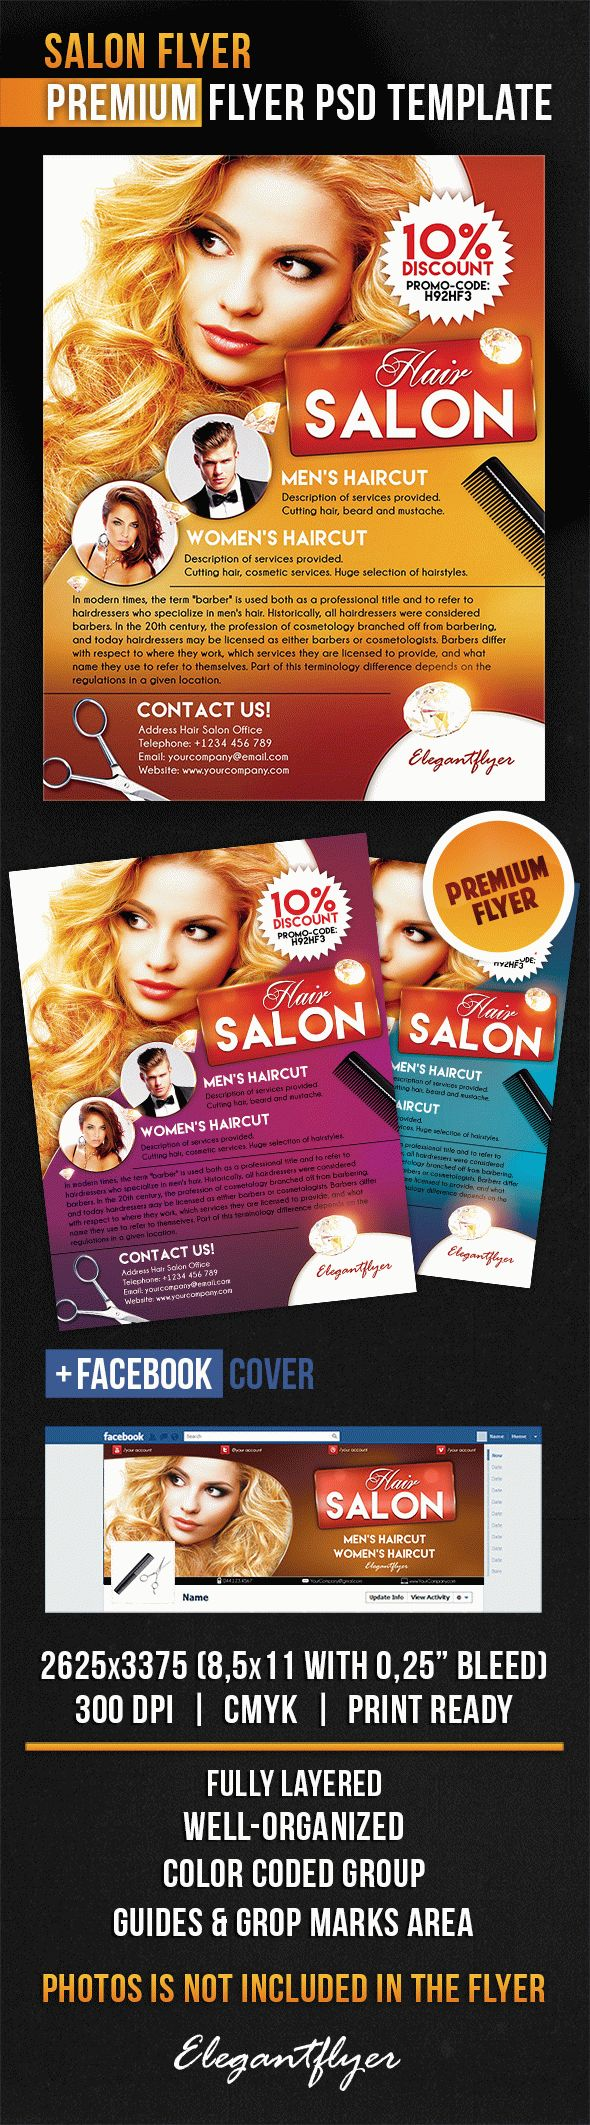 Salon Flyer – Flyer PSD Template + Facebook Cover